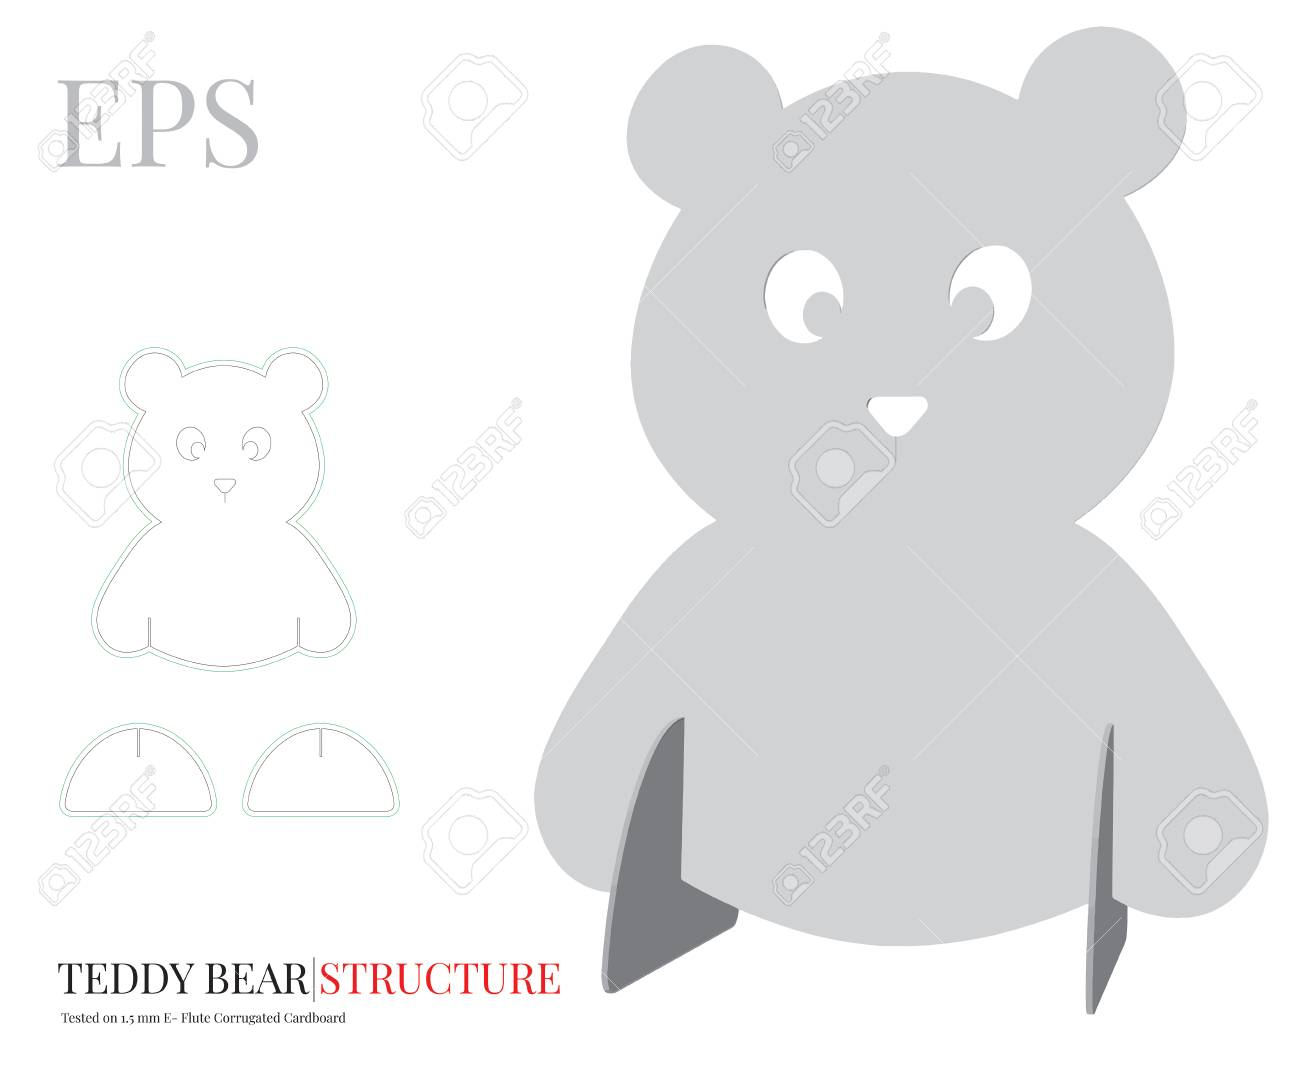 Teddy Bear Template Vector With Die Cut Or Laser Cut Layers Royalty Free Cliparts Vectors And Stock Illustration Image 127394151